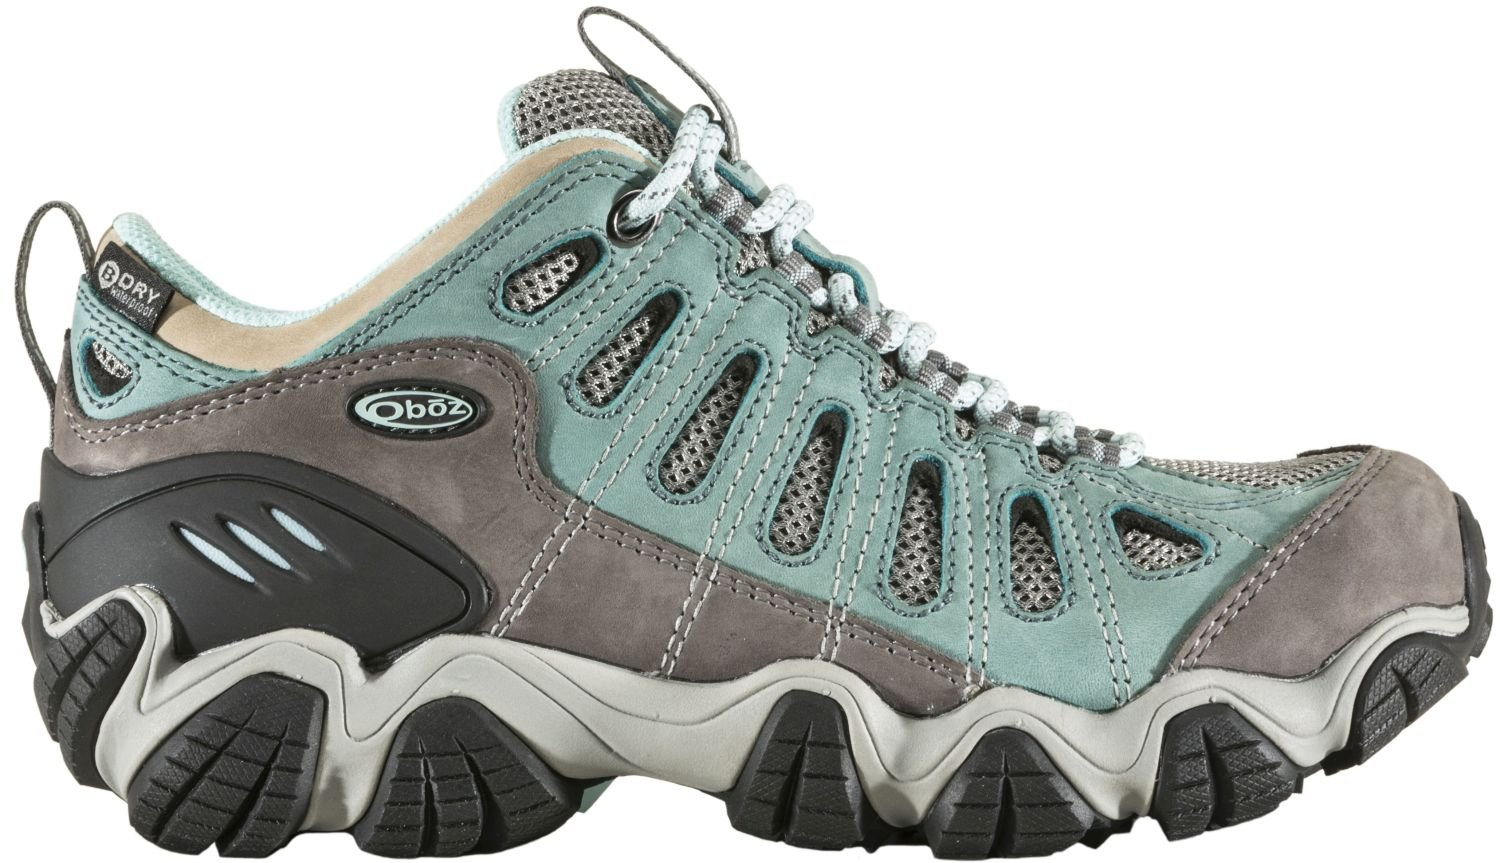 Oboz Women's Sawtooth Low BDry Hiking Shoe B07F46G9MT 9.5 D US|Mineral Blue